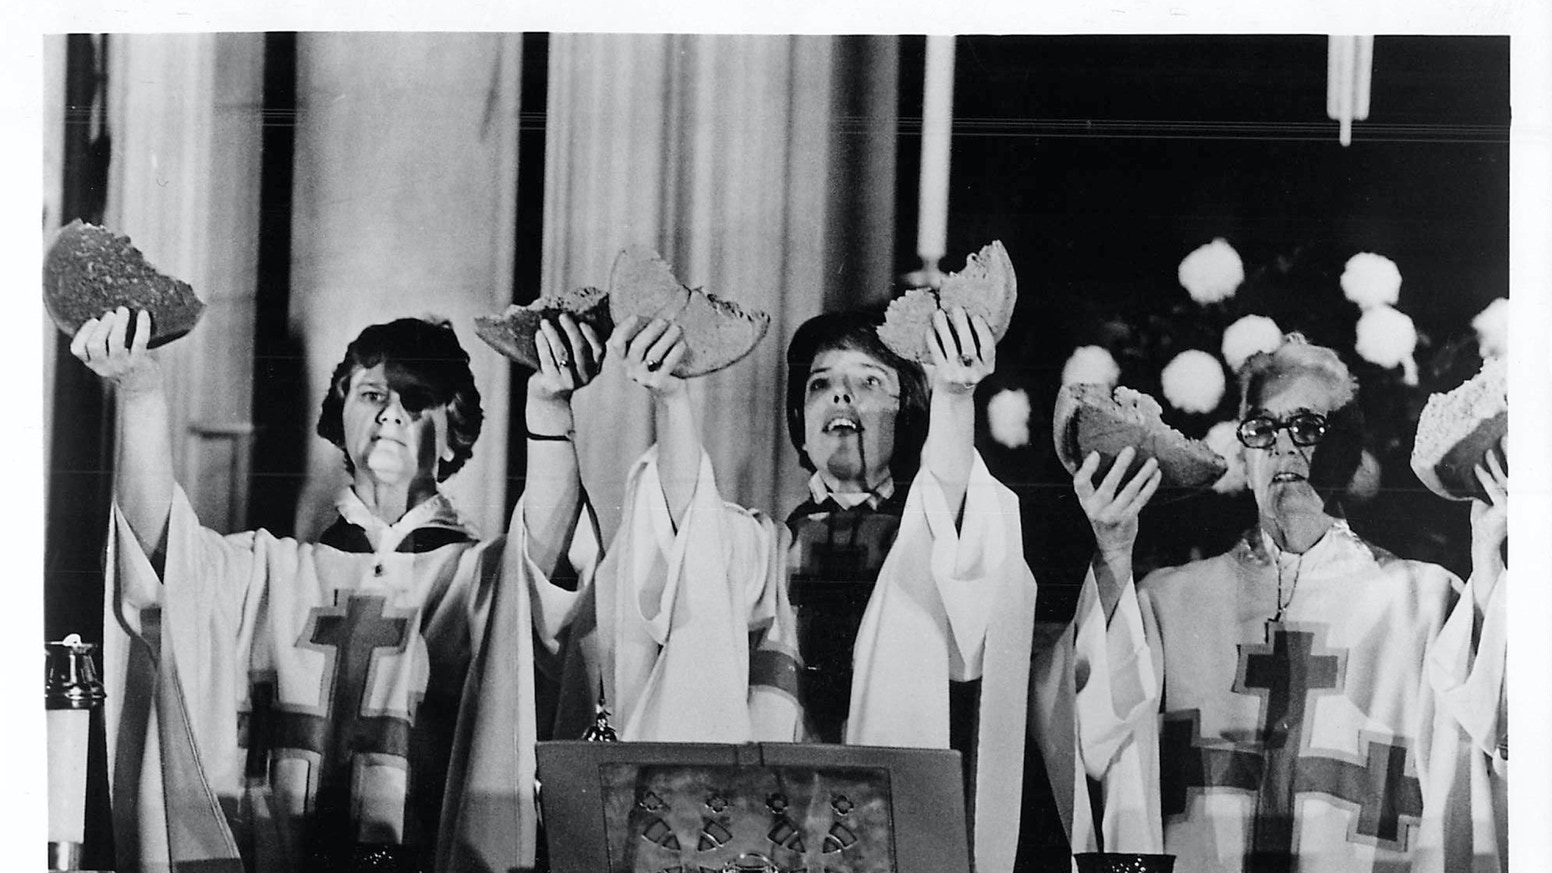 A documentary film about the women who defied the leadership of the Episcopal church in 1974, and became the first women priests.